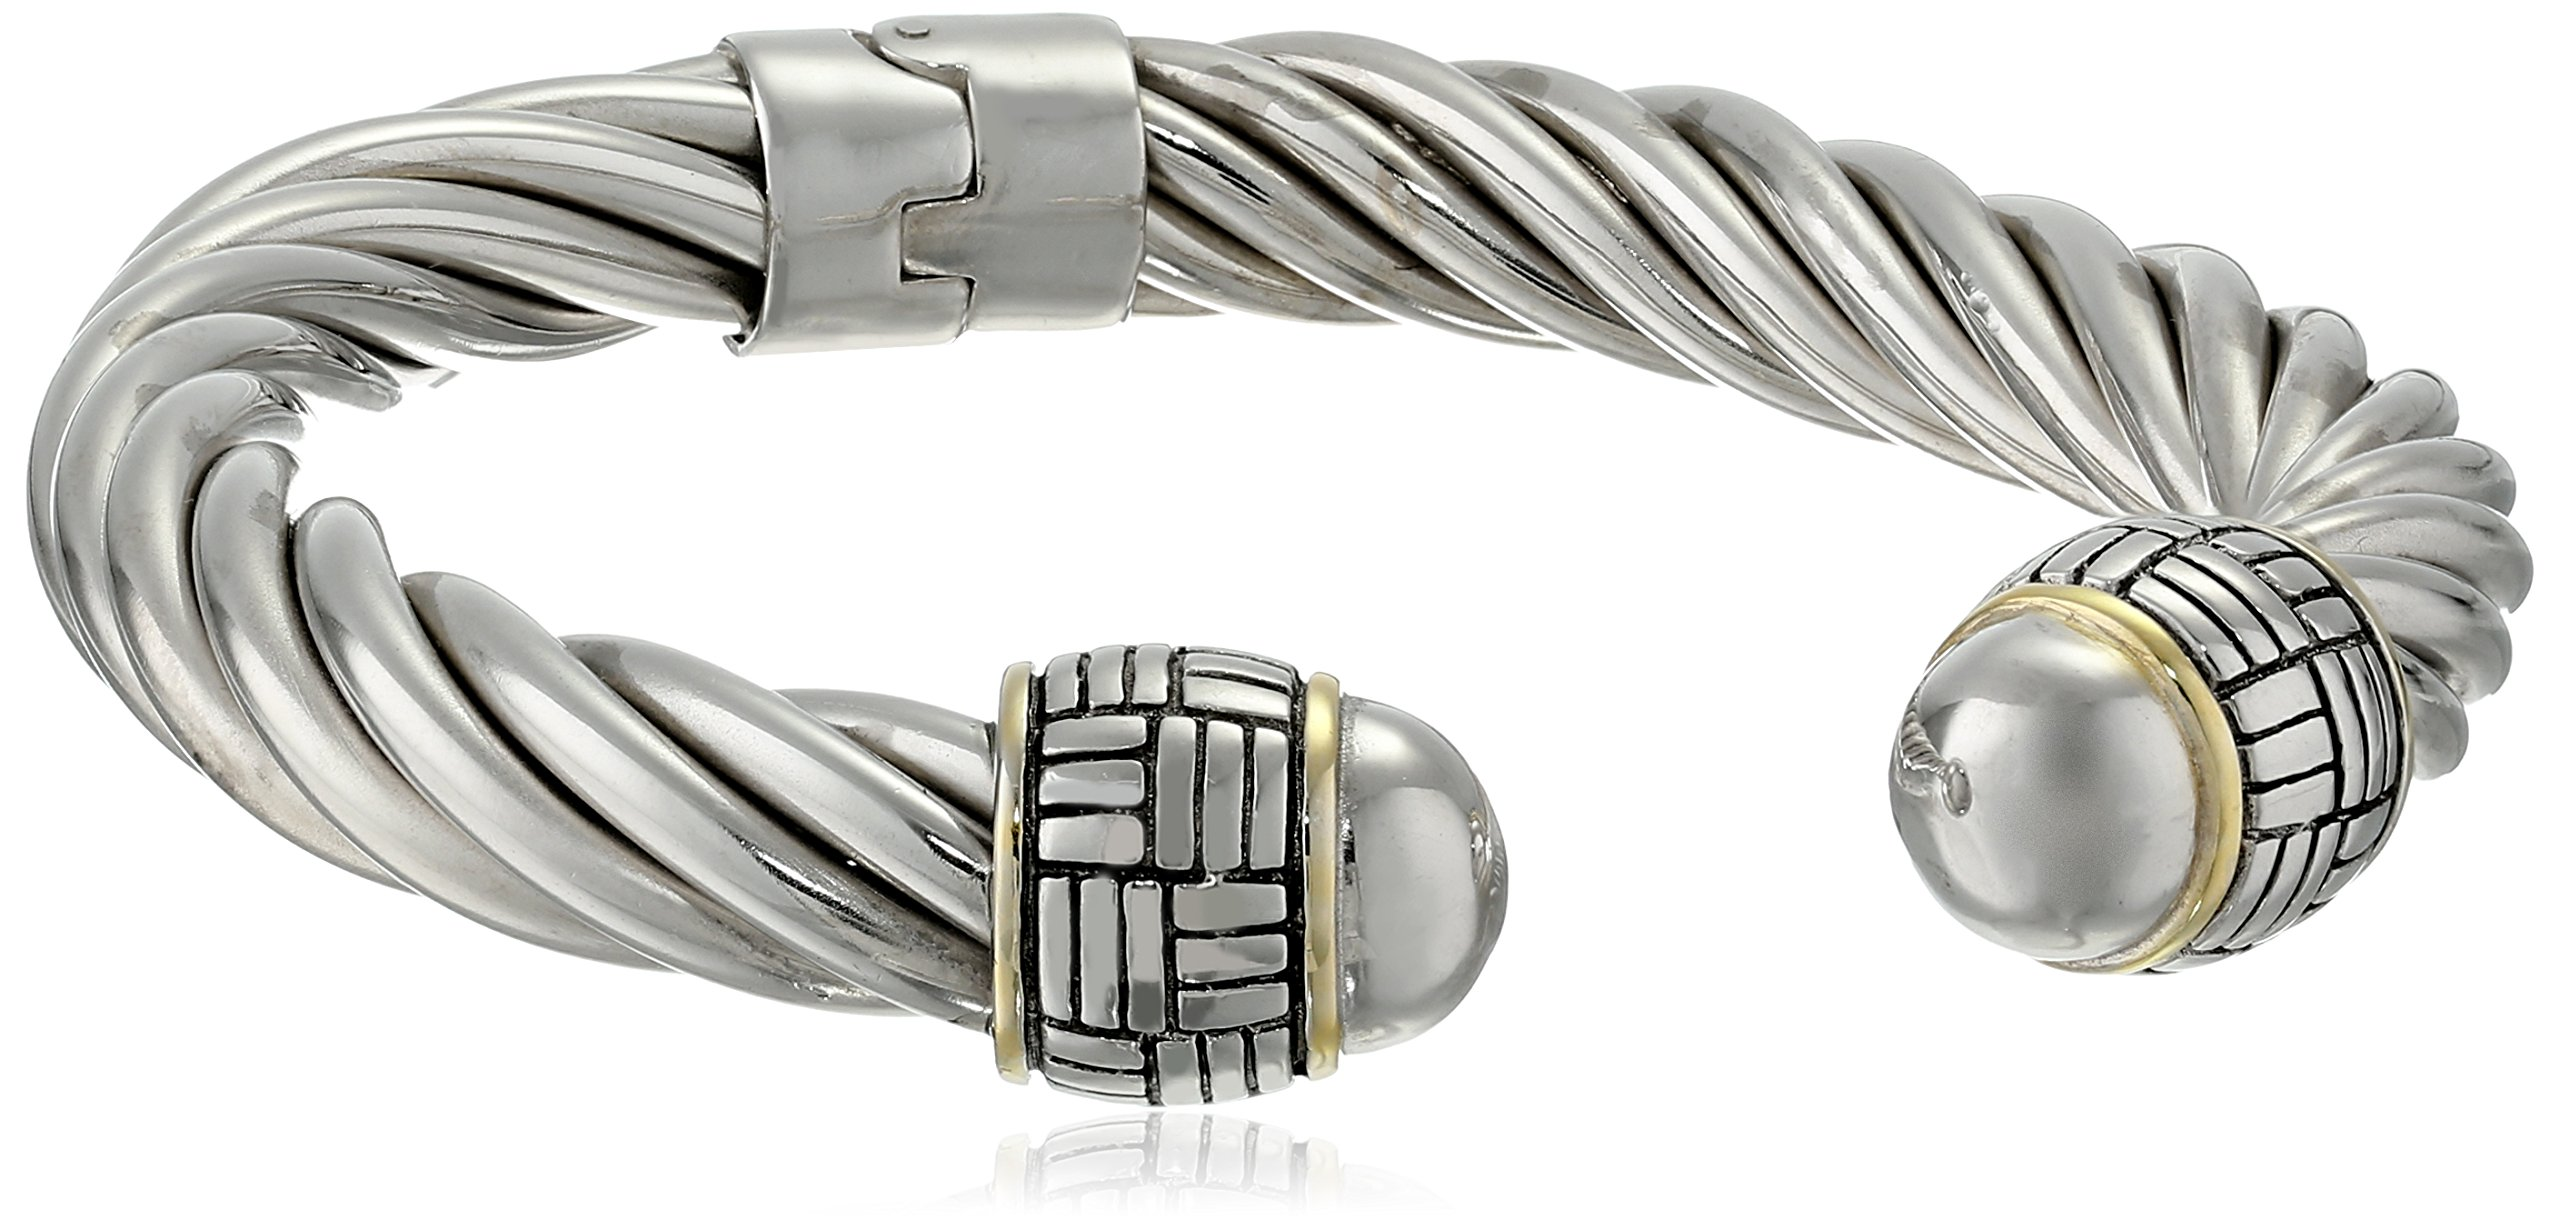 Two-Tone 14k Yellow Gold-Plated and Sterling Silver Twisted Bangle Bracelet, 7''